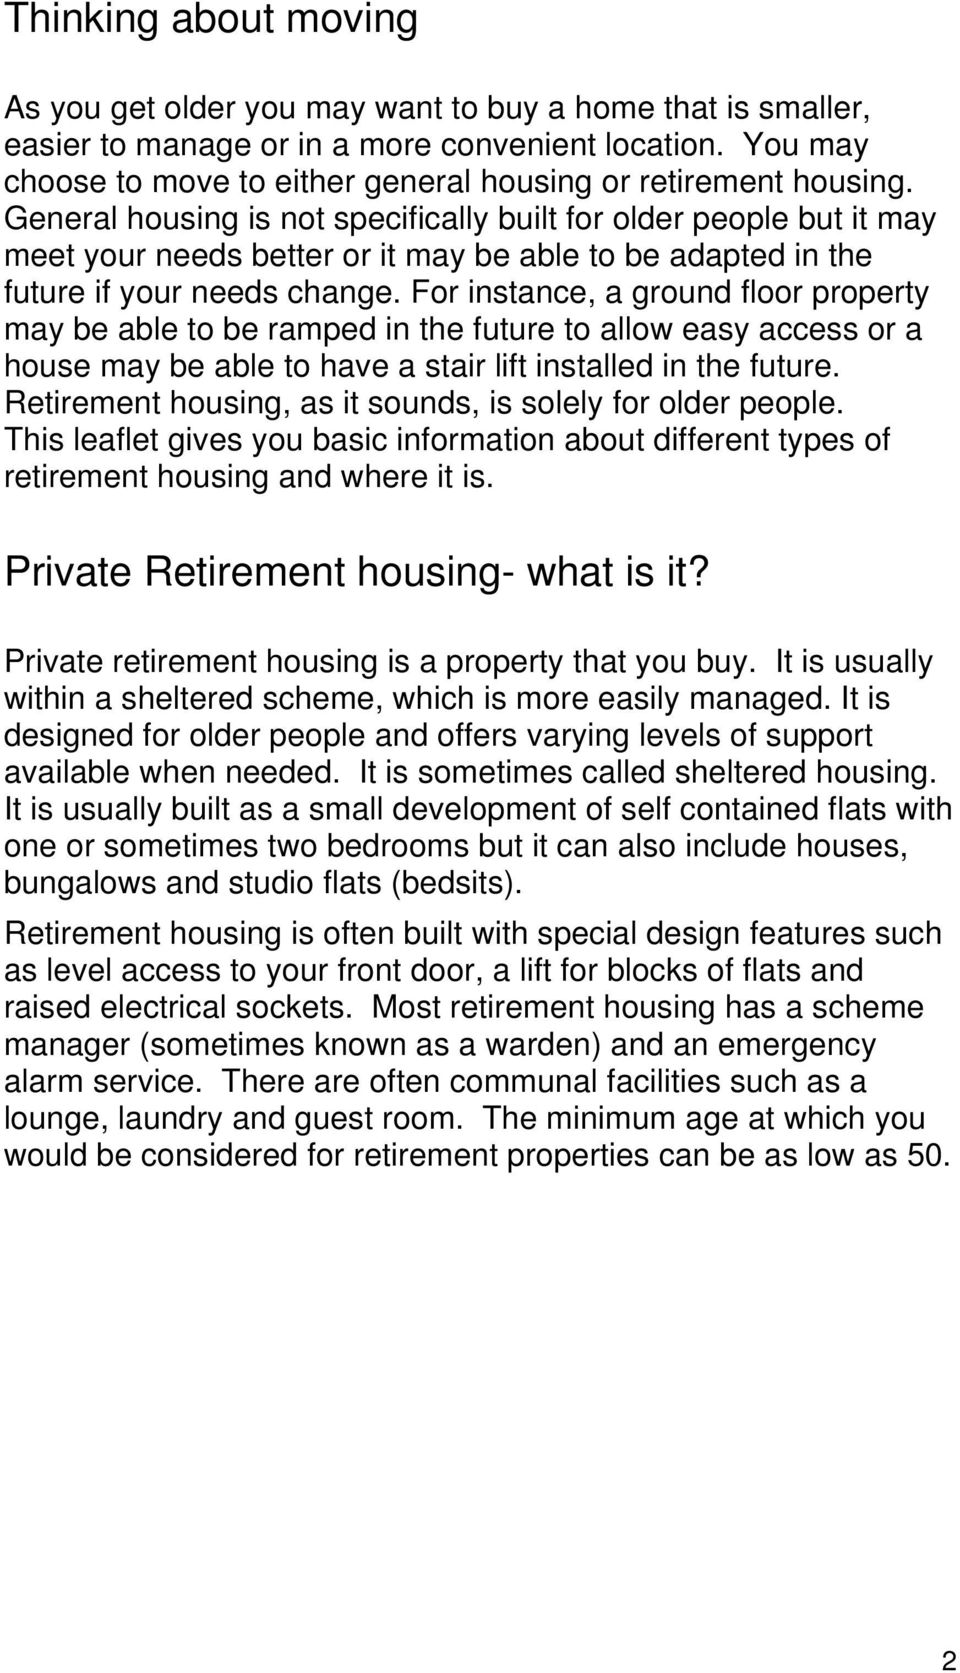 General housing is not specifically built for older people but it may meet your needs better or it may be able to be adapted in the future if your needs change.